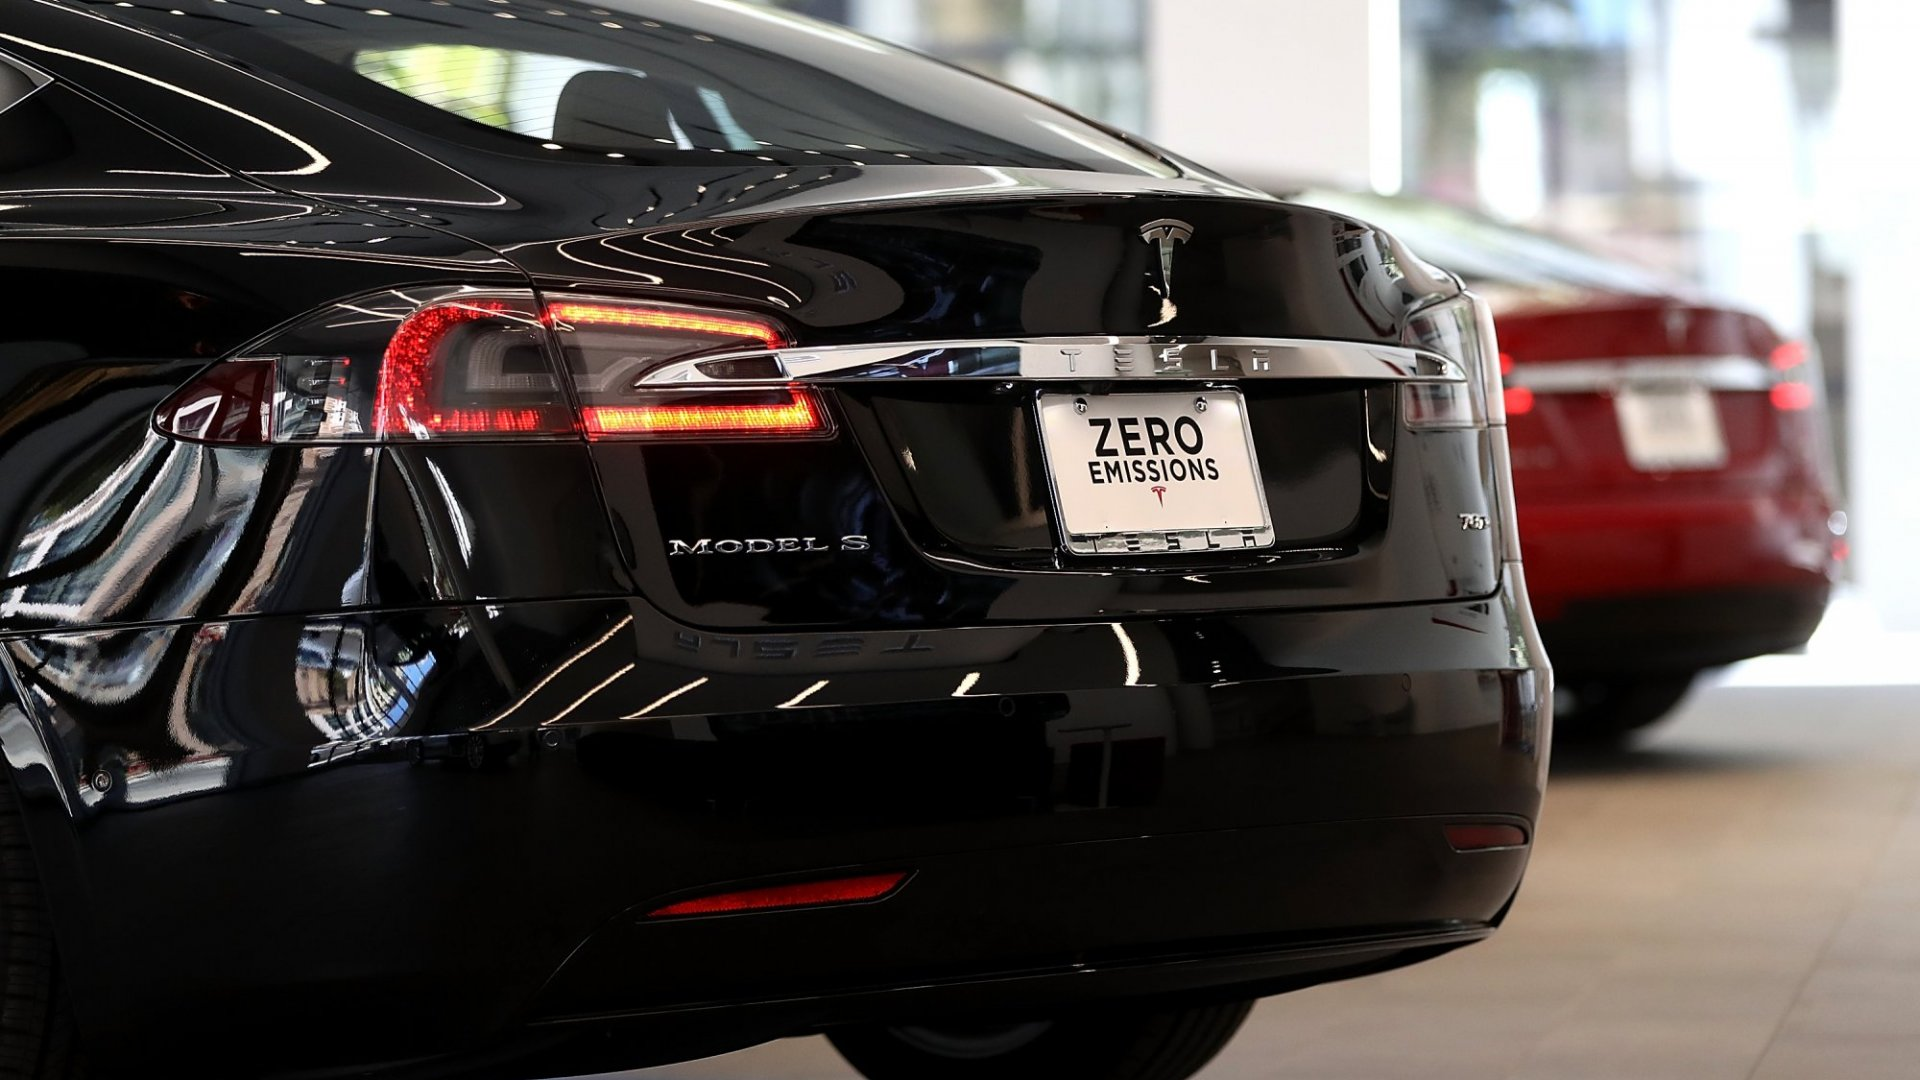 Hackers Access Tesla Brakes From 12 Miles Away